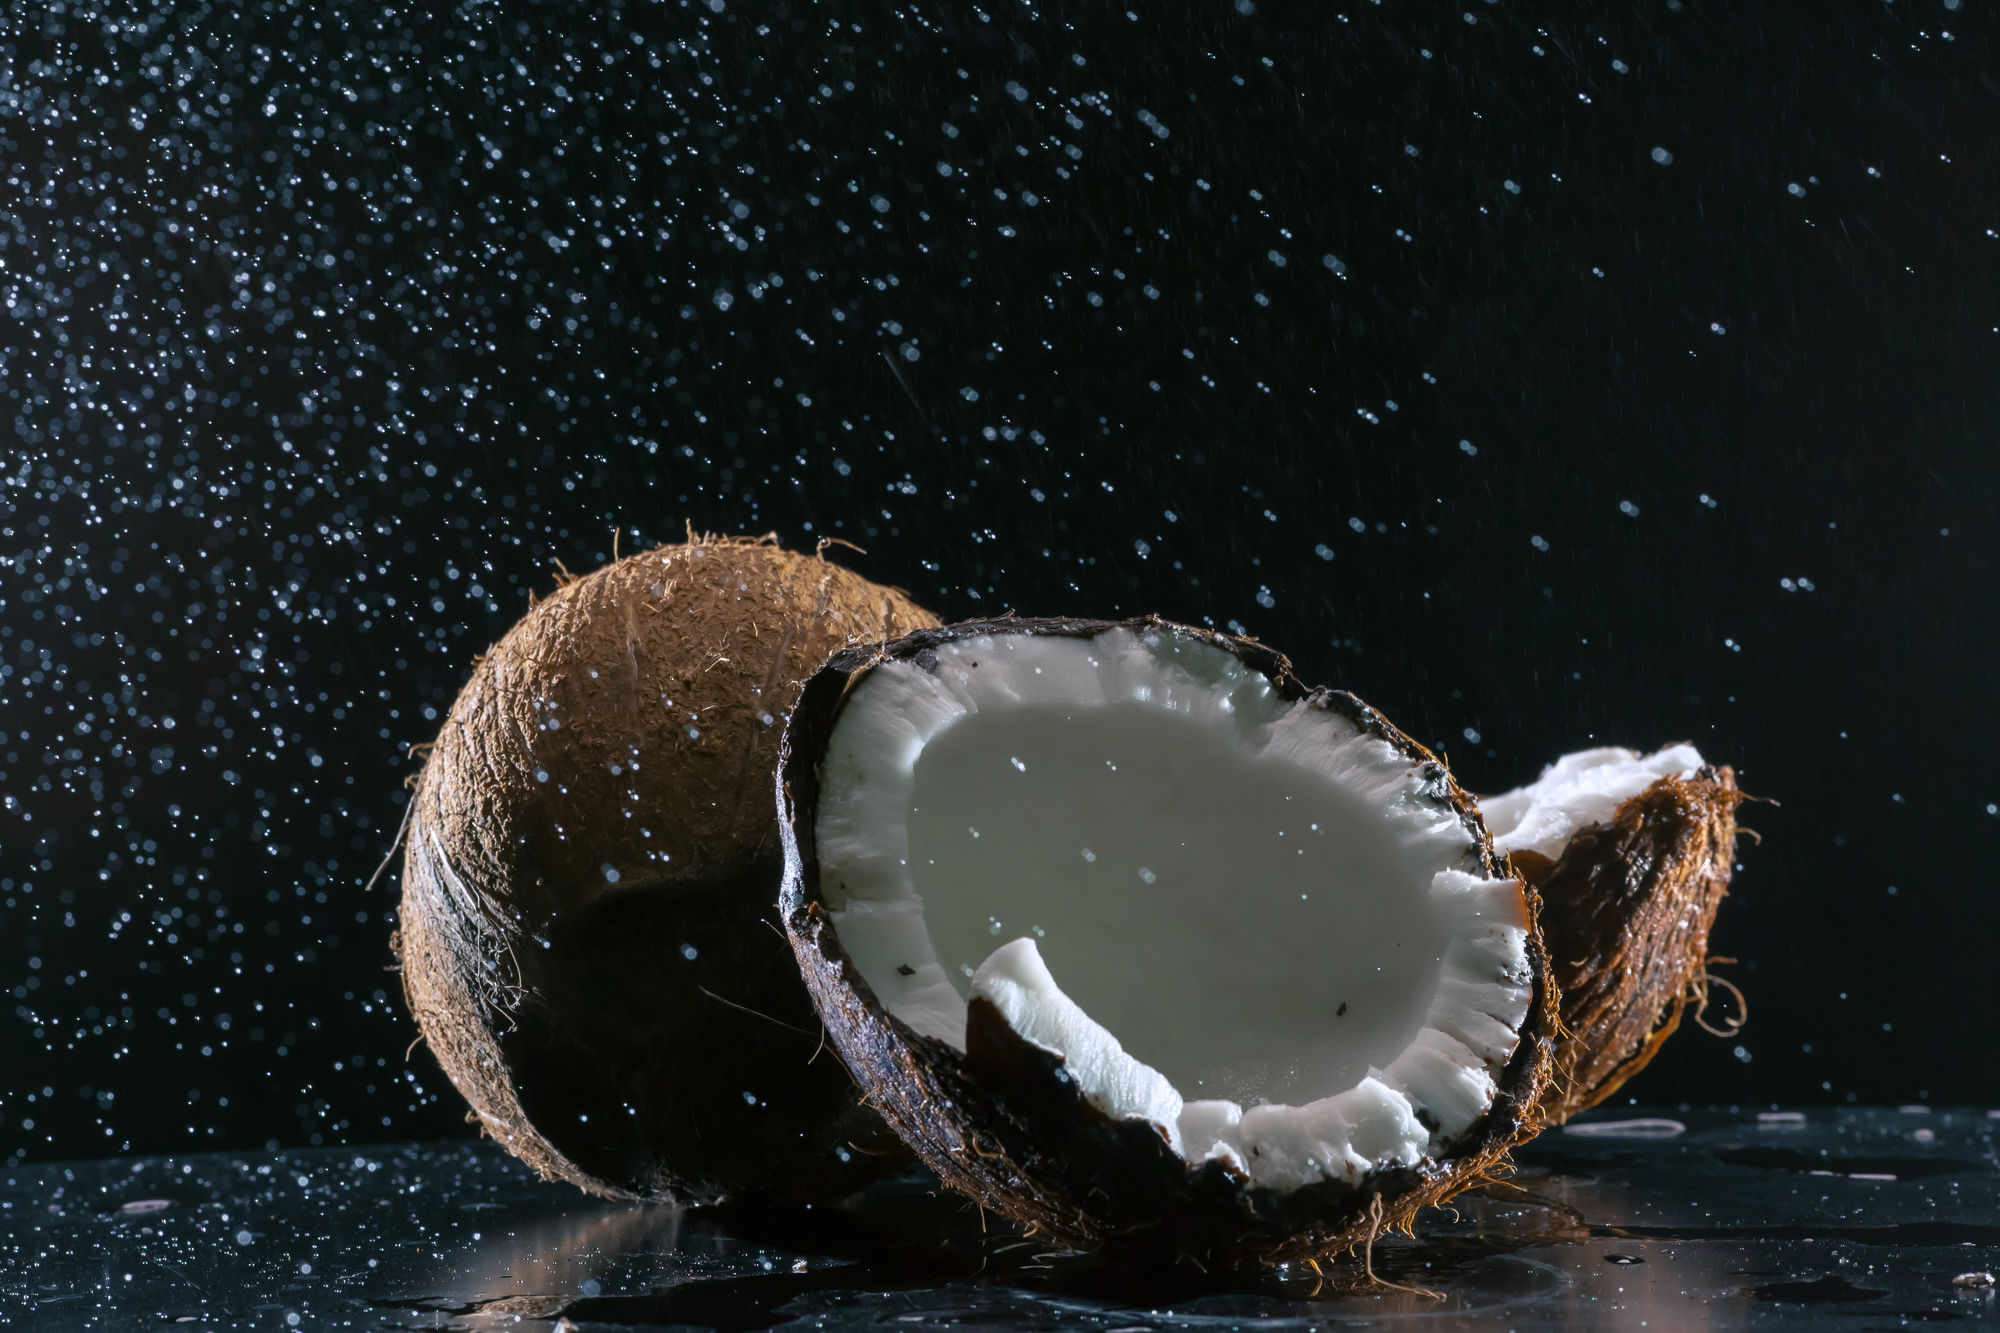 cracked coconut with big splash on black background